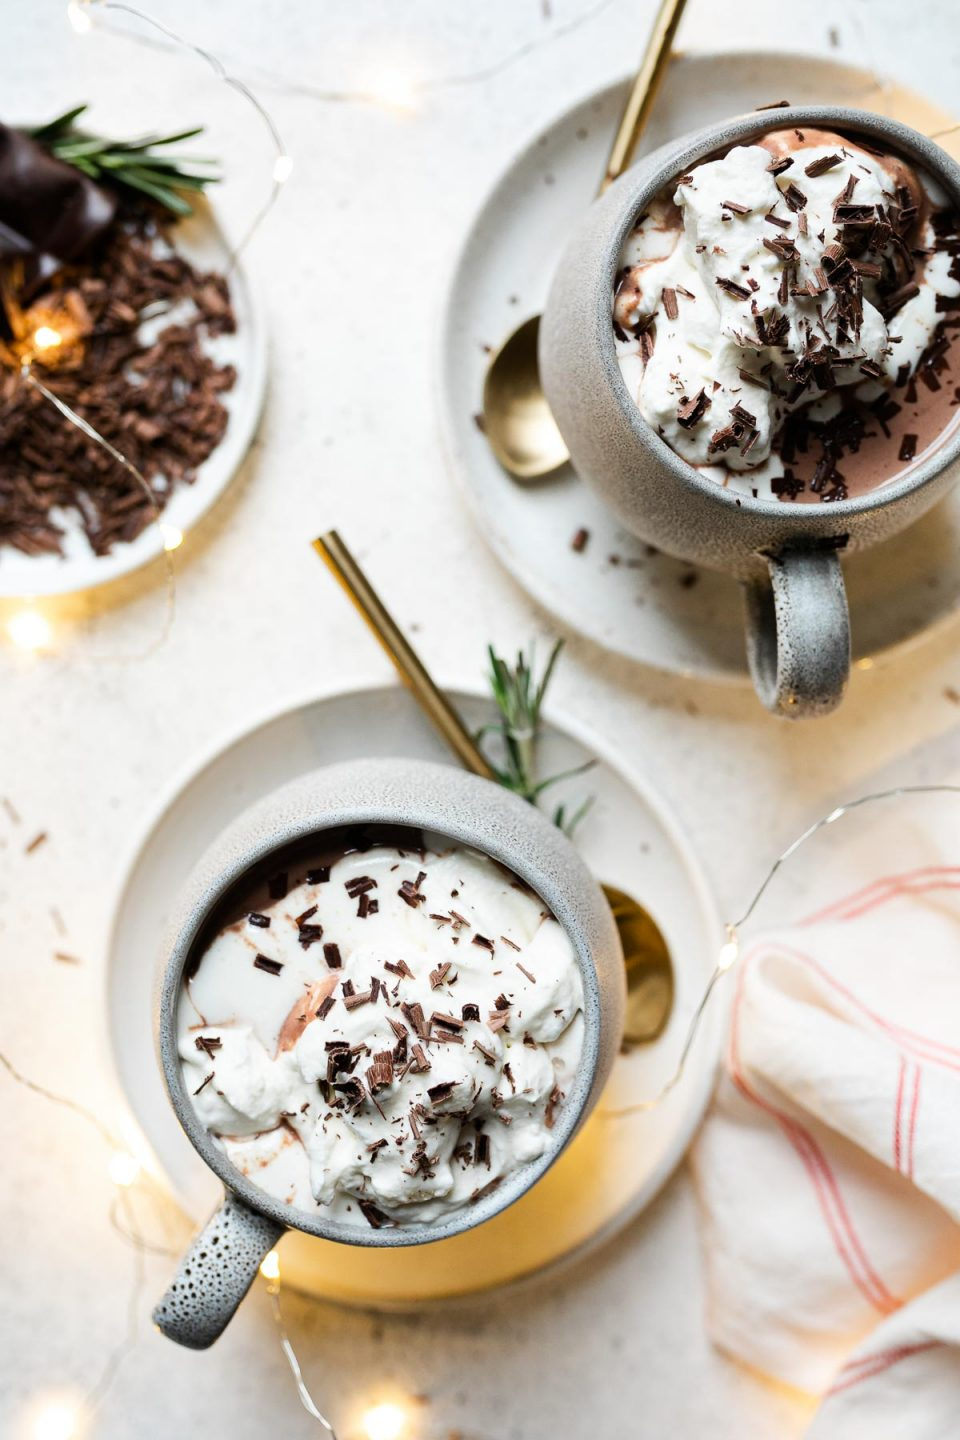 Christmas hot chocolate shown in 2 gray mugs, which sit atop 2 white saucers. The cocoa is topped with freshly whipped cream & shaved chocolate. The saucers sit atop a white surface, next to a red & white striped linen napkin & a small white plate of shaved chocolate.